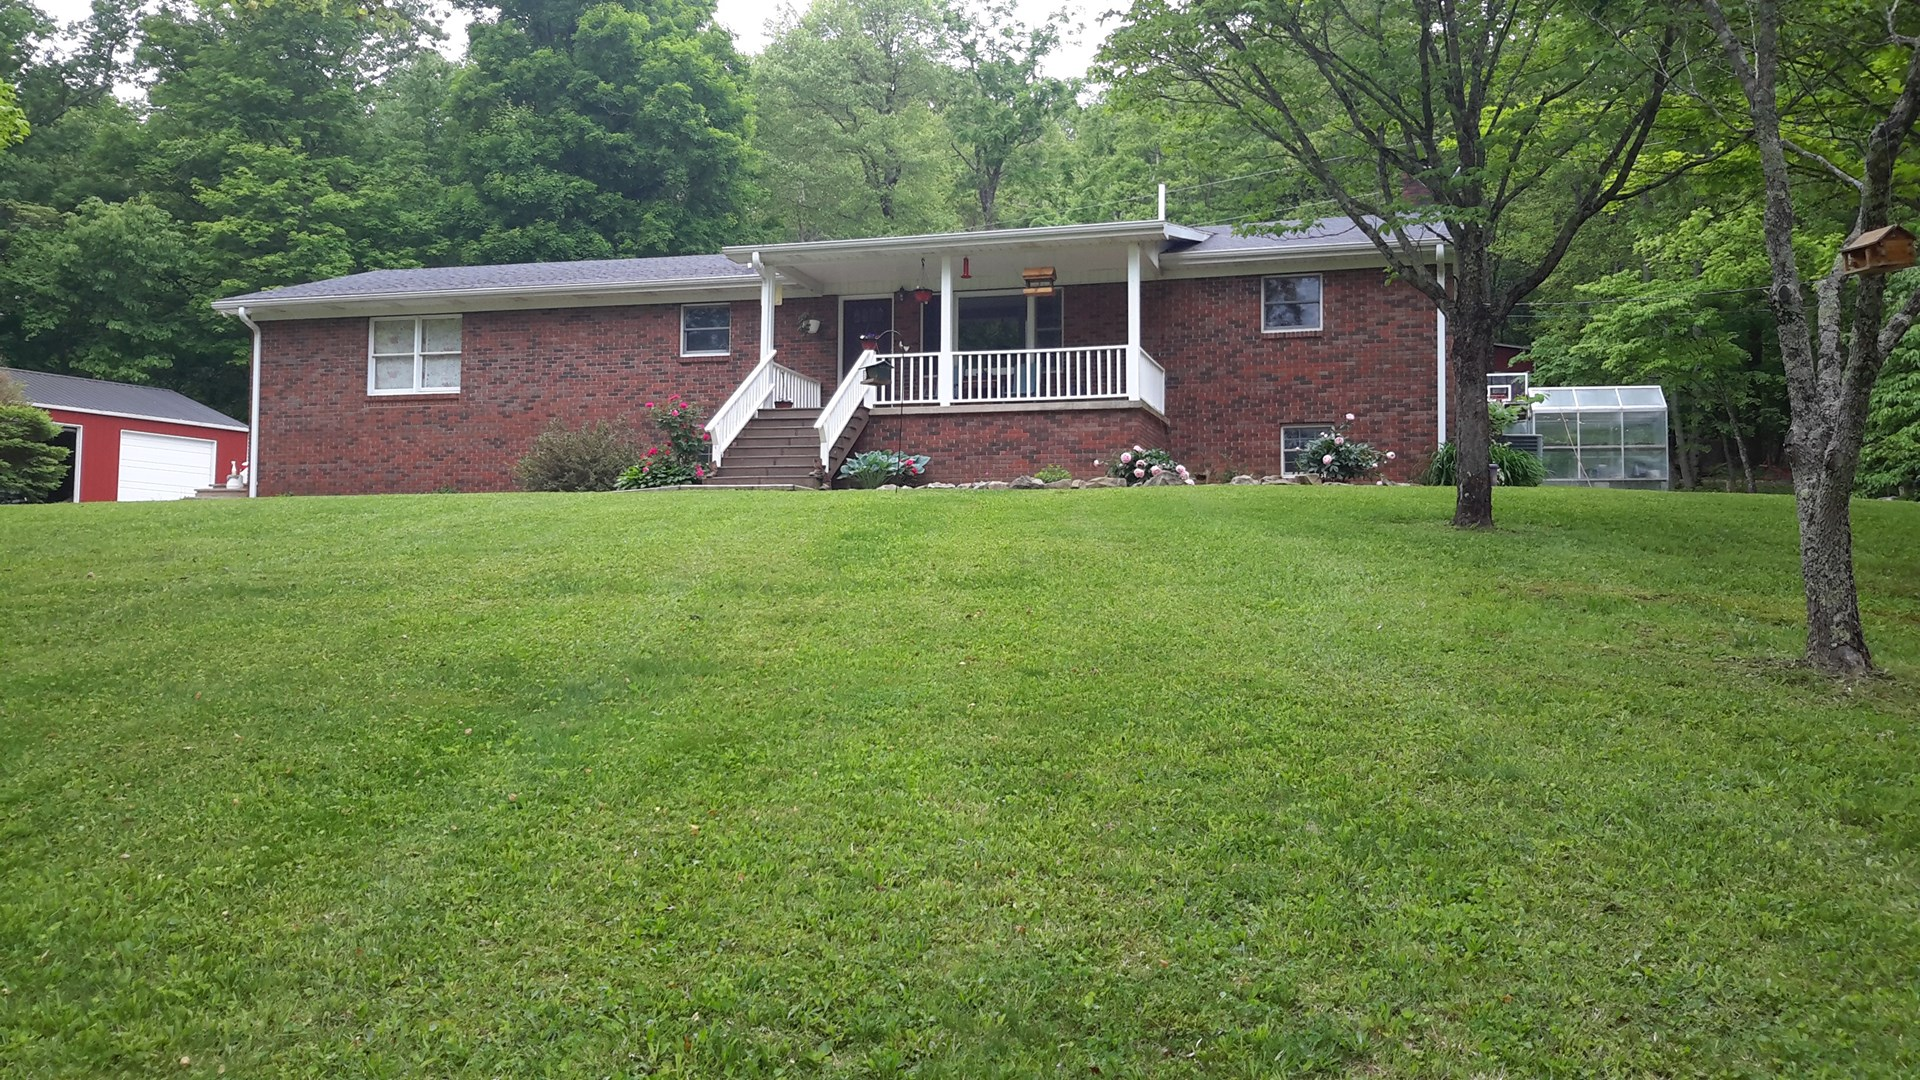 HOBBY FARM/BRICK HOME/2 GARAGES/BARN/SHEDS/SOUTH-CENTRAL KY